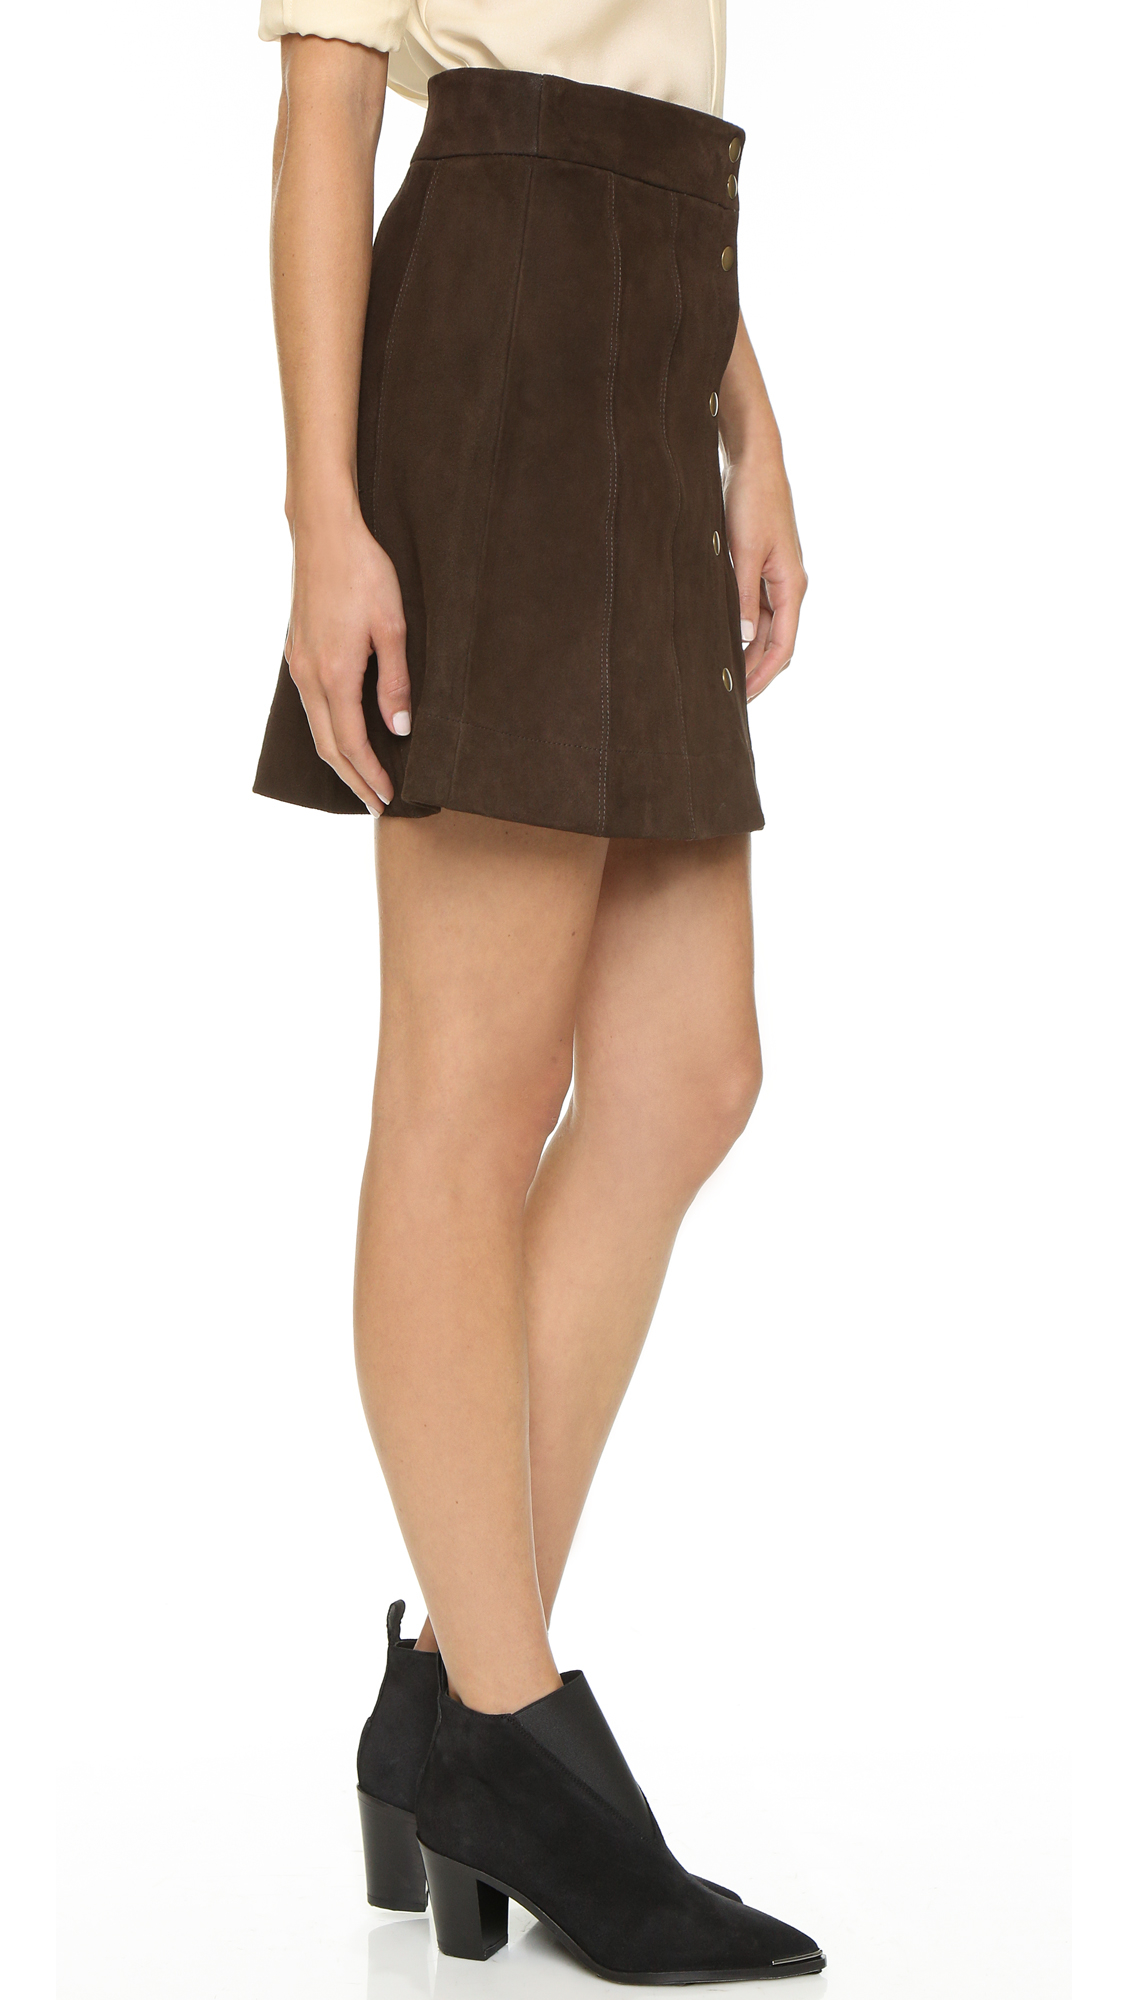 Frame Le Paneled Suede Miniskirt - Dark Brown in Brown | Lyst